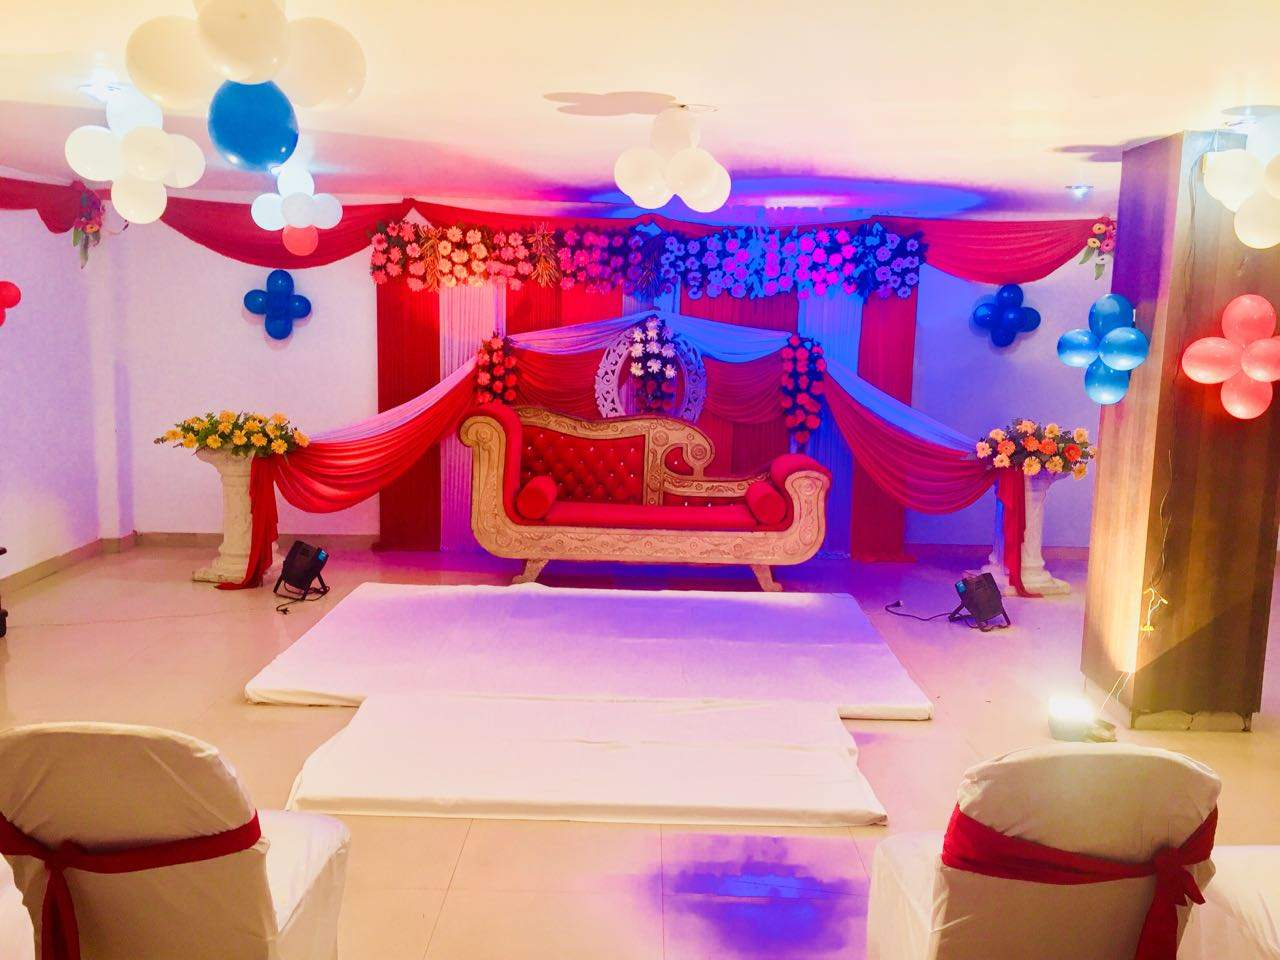 Top Ac Banquet Halls in Gomti Nagar - Best Ac Marriage Halls Lucknow ...